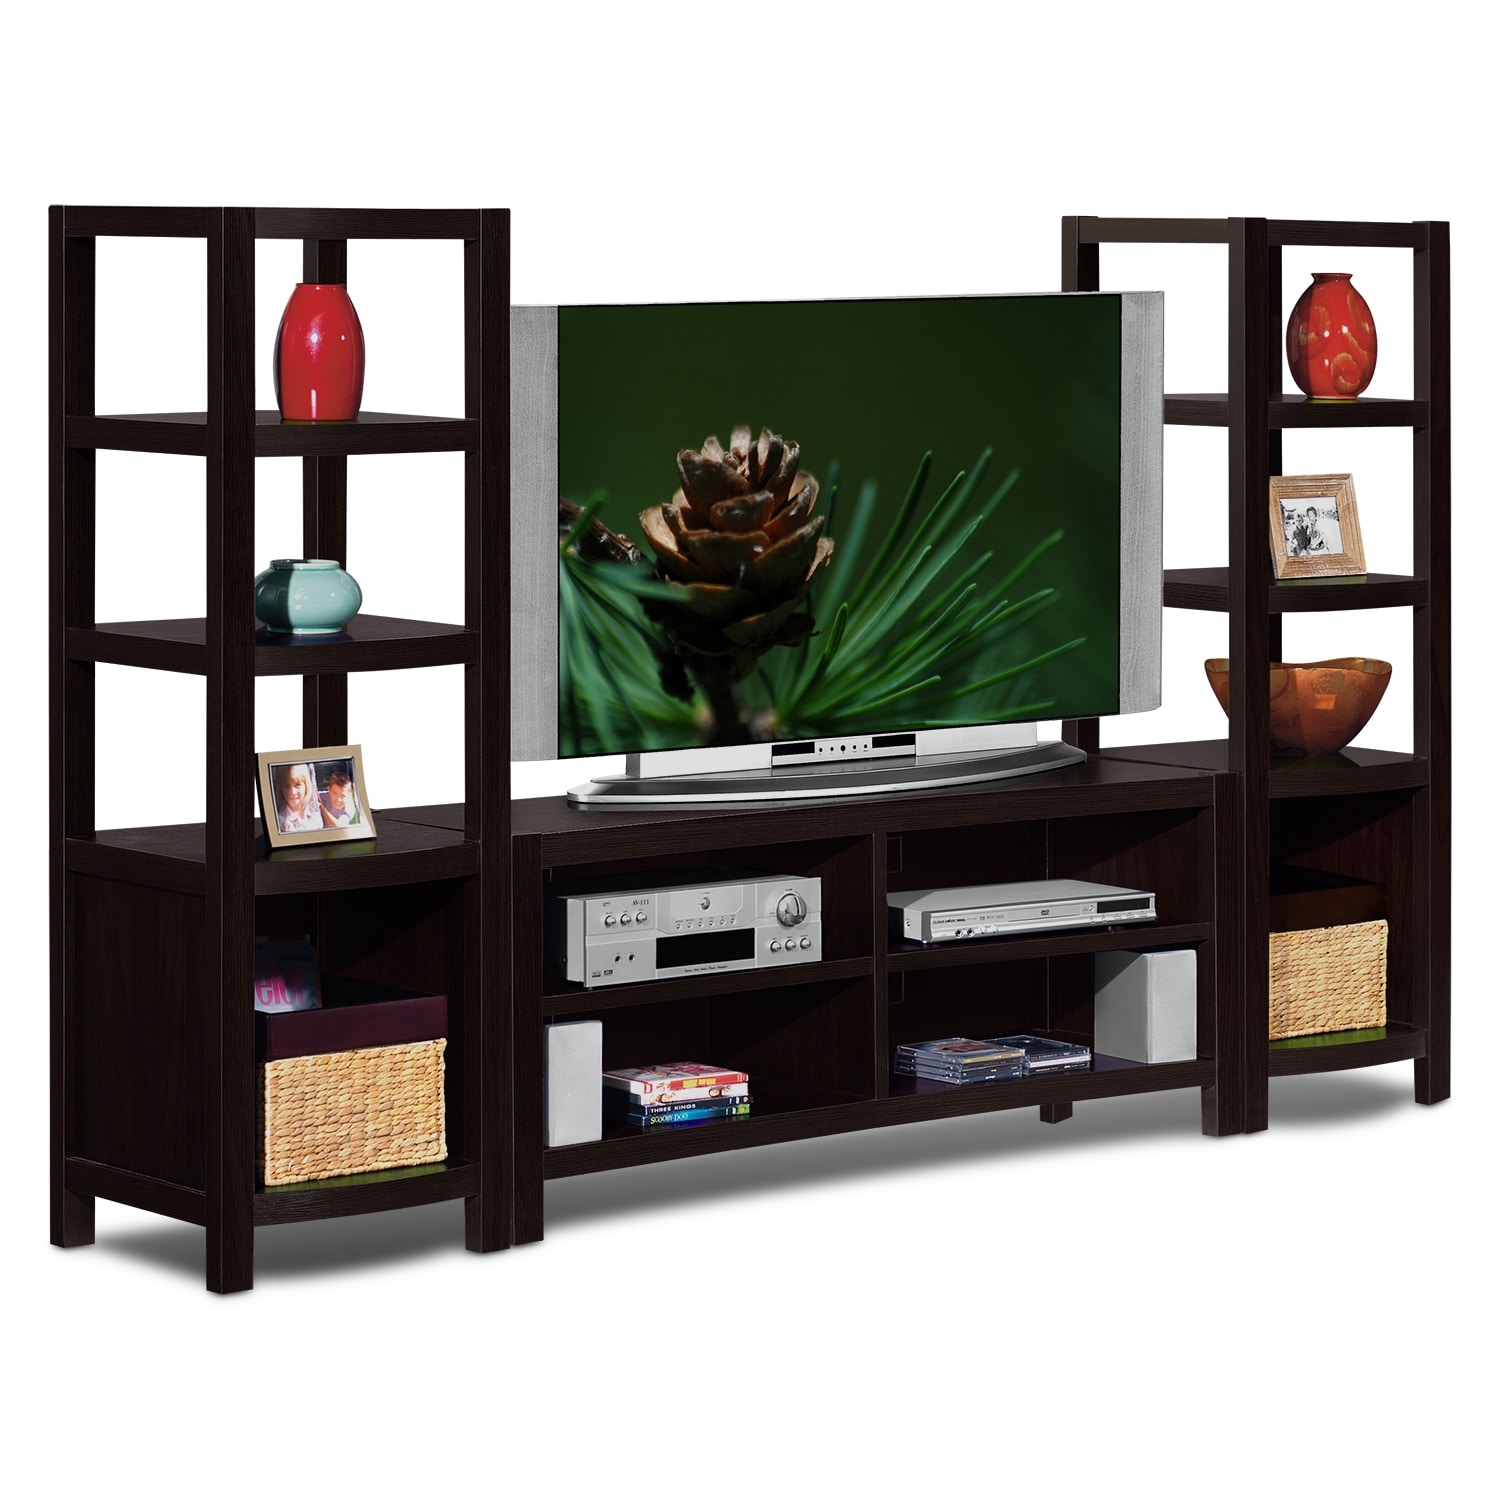 Value City Furniture: Townsend 3 Pc. Entertainment Wall Unit